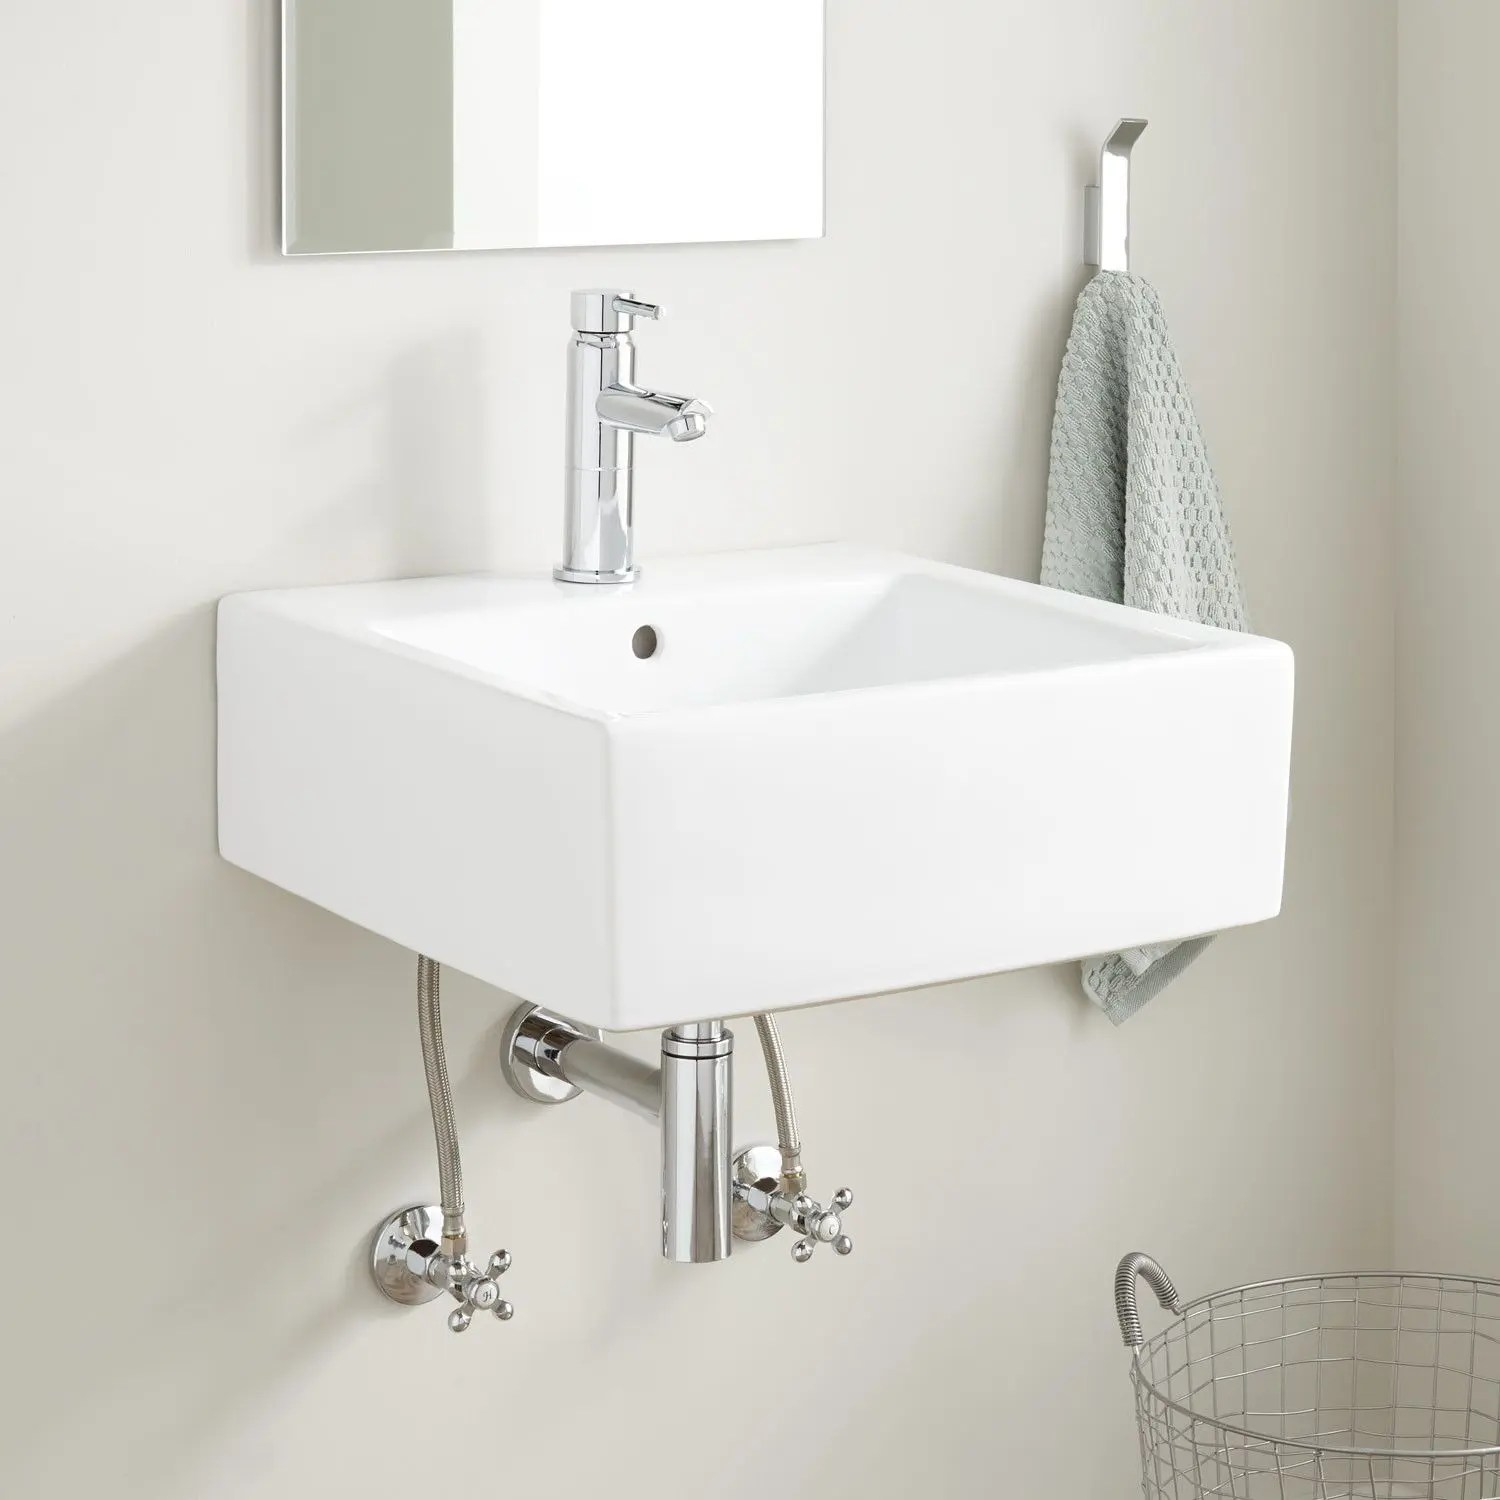 pedro square porcelain wall mount sink